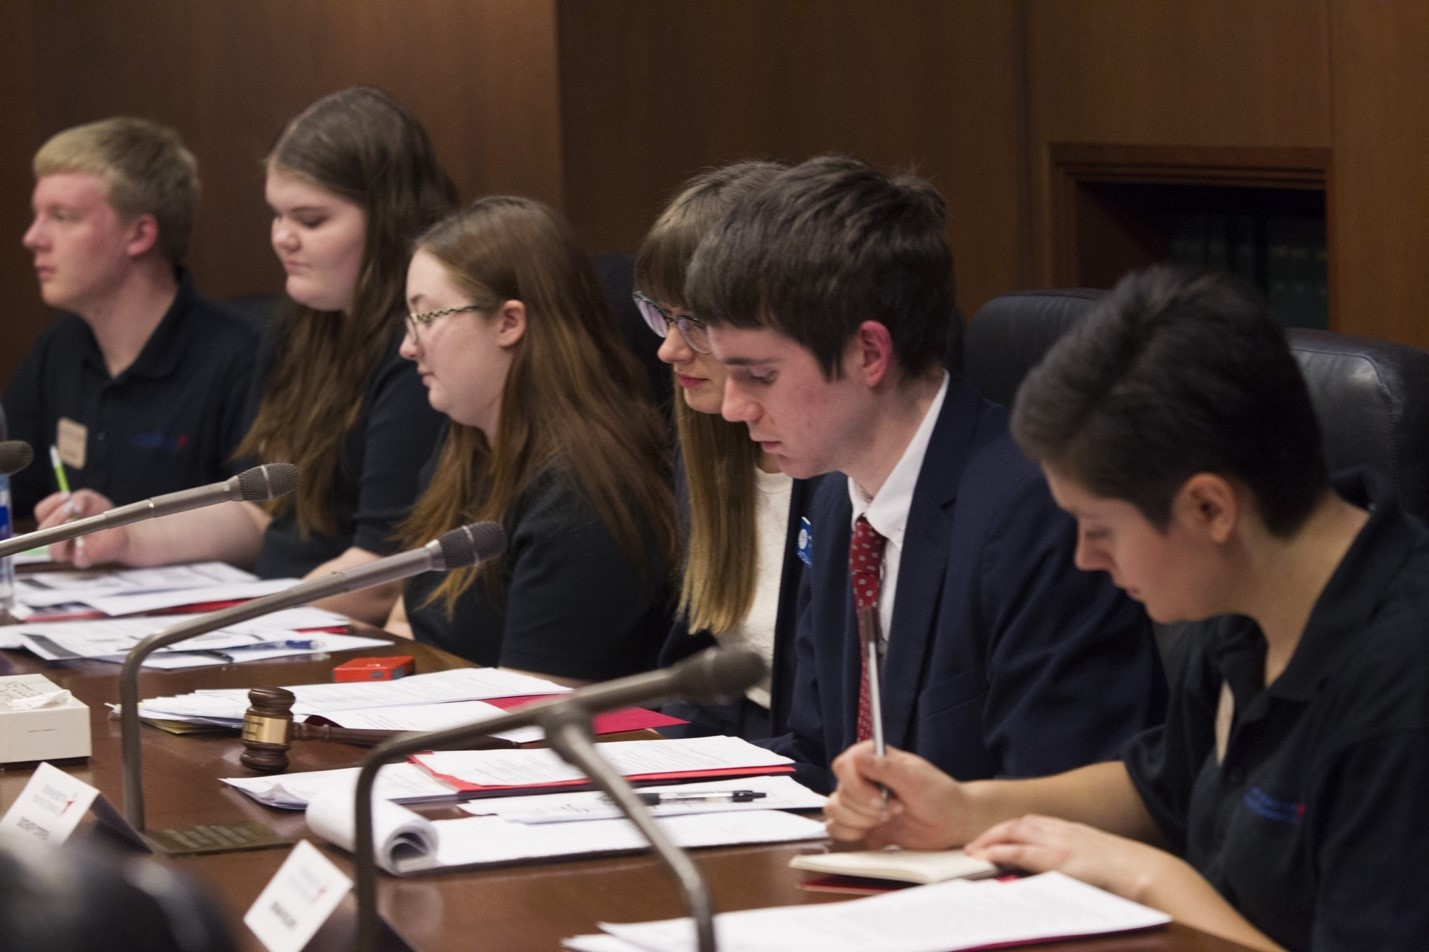 Every year at Youth Day at the Capitol, young people involved in the Minnesota Alliance With Youth advise lawmakers on legislation affecting youth.